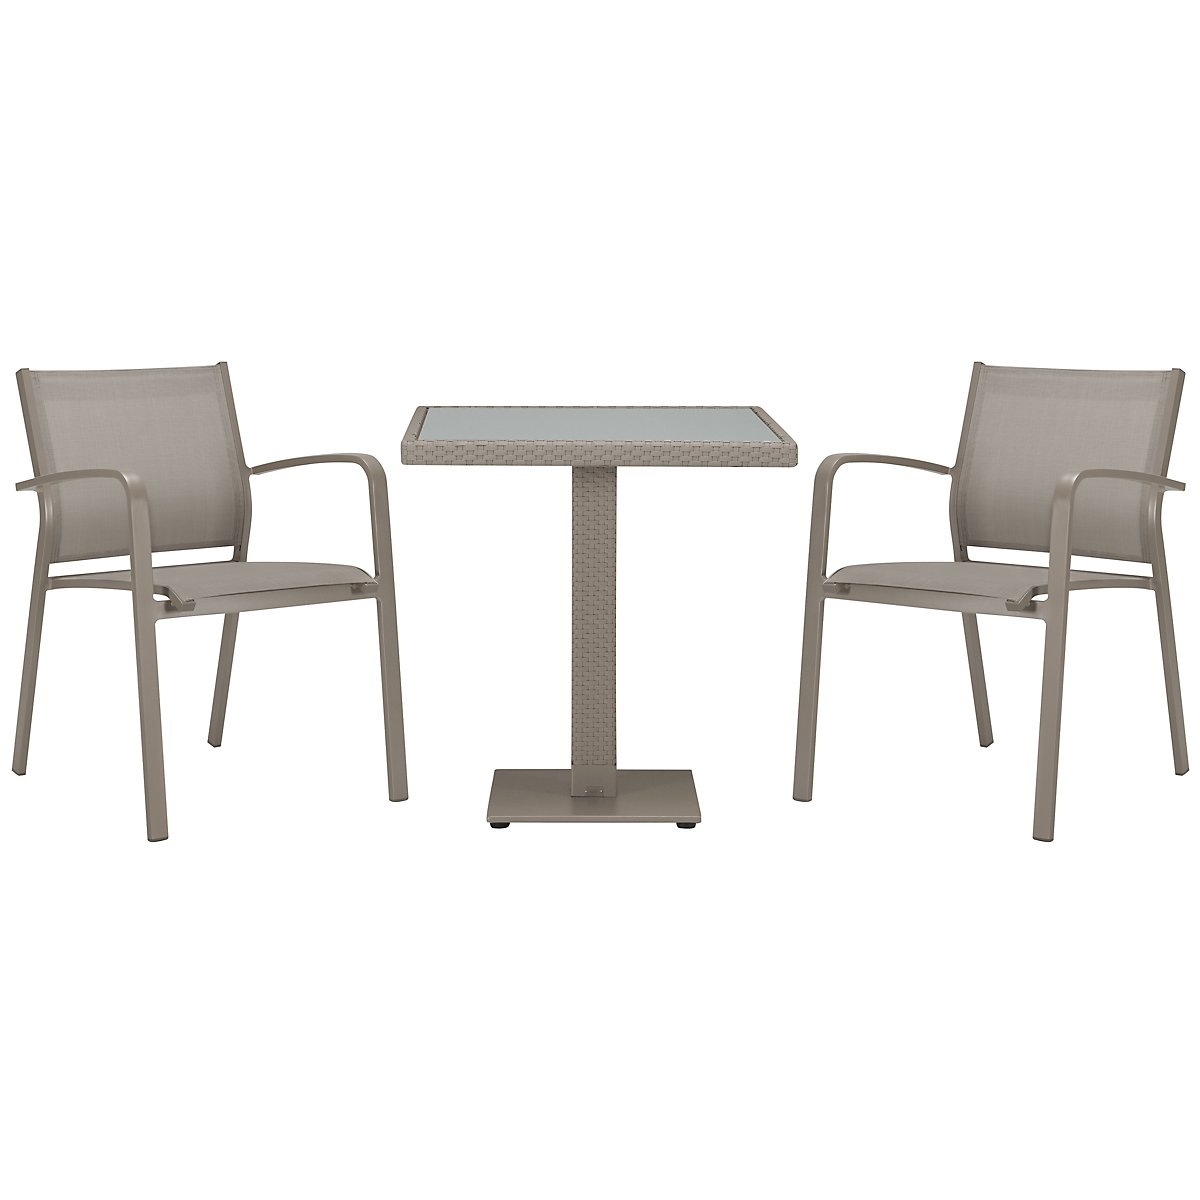 "Lisbon Khaki 27"" Square Table & 2 Chairs"